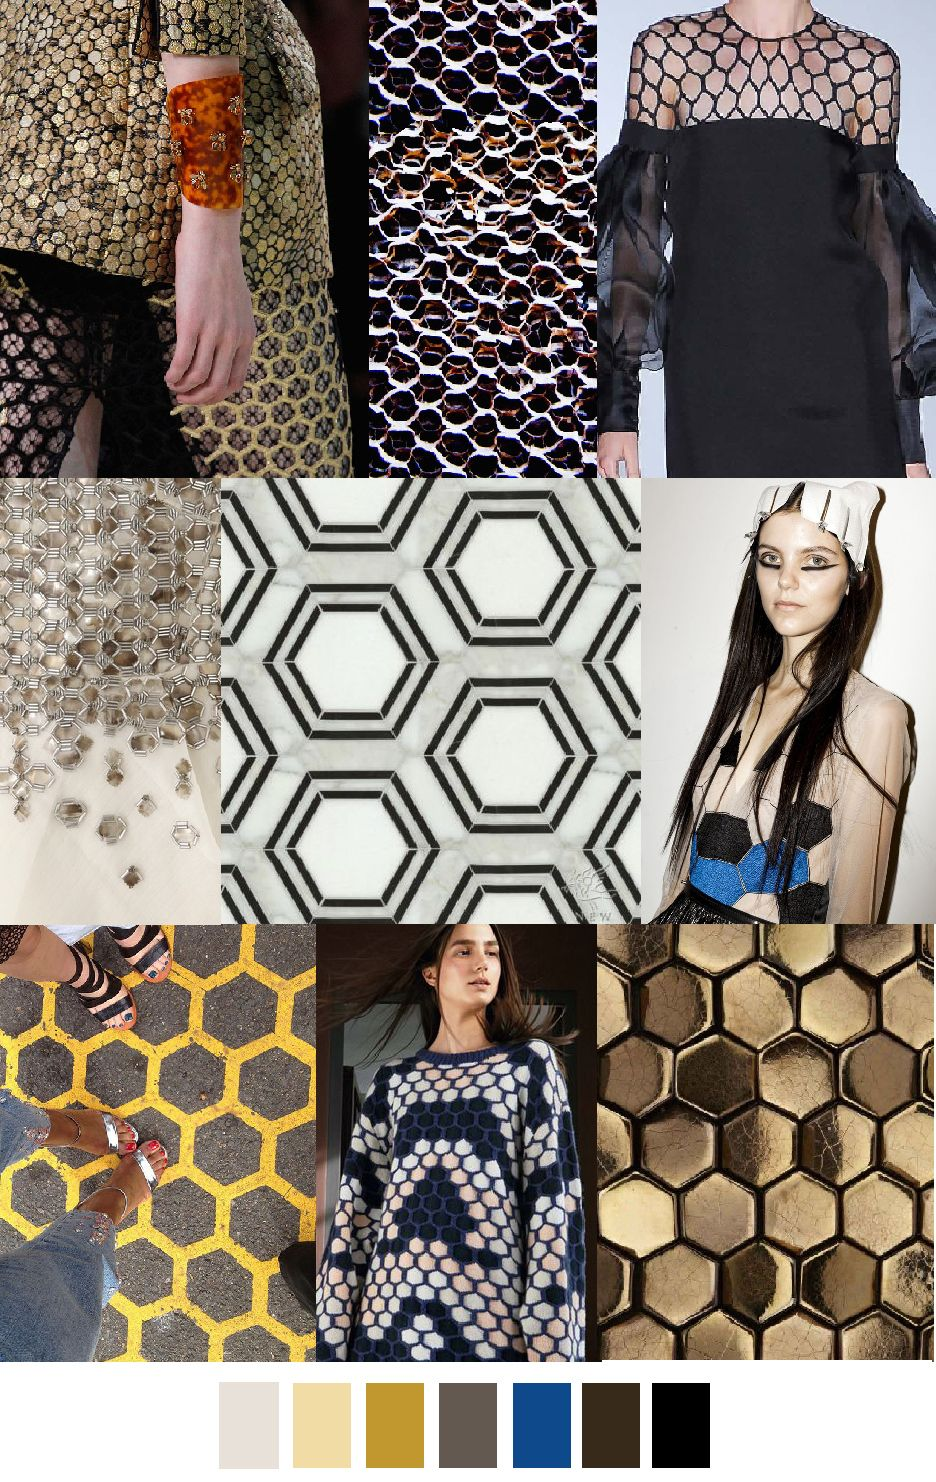 RAW HONEYCOMB | AW 2016/17 Trends | 2015 fashion trends ...